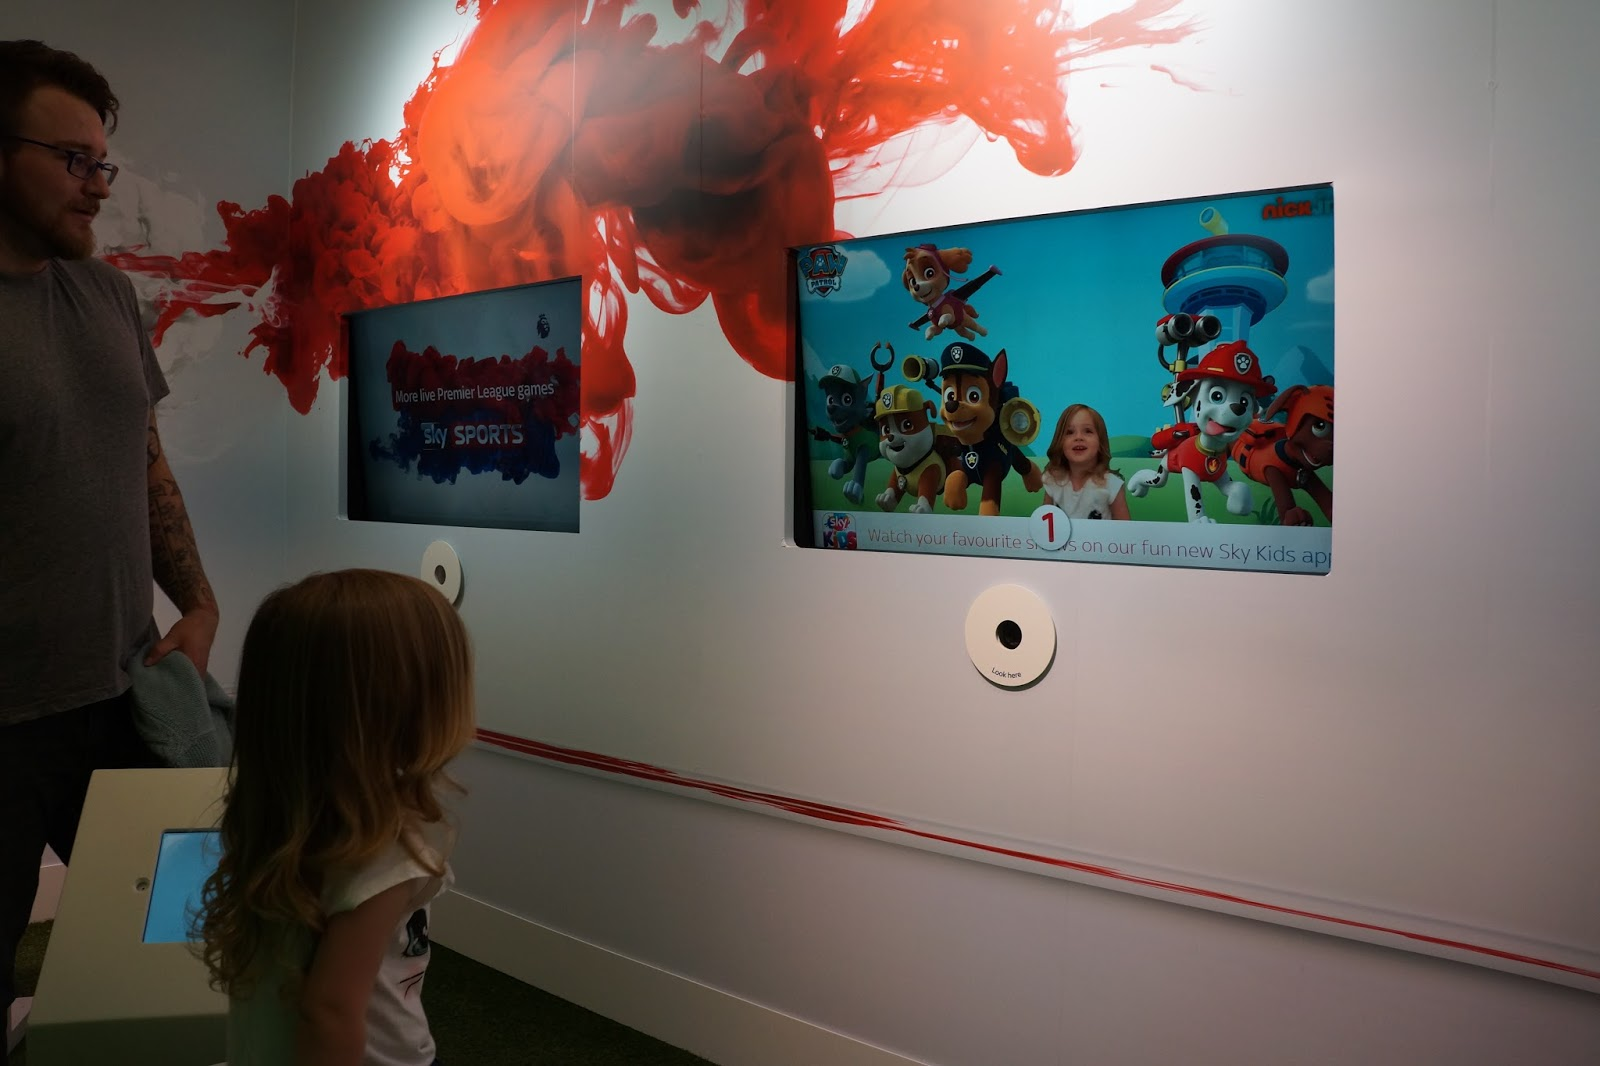 toddler looking at an image of themselves with cartoons at sky studios